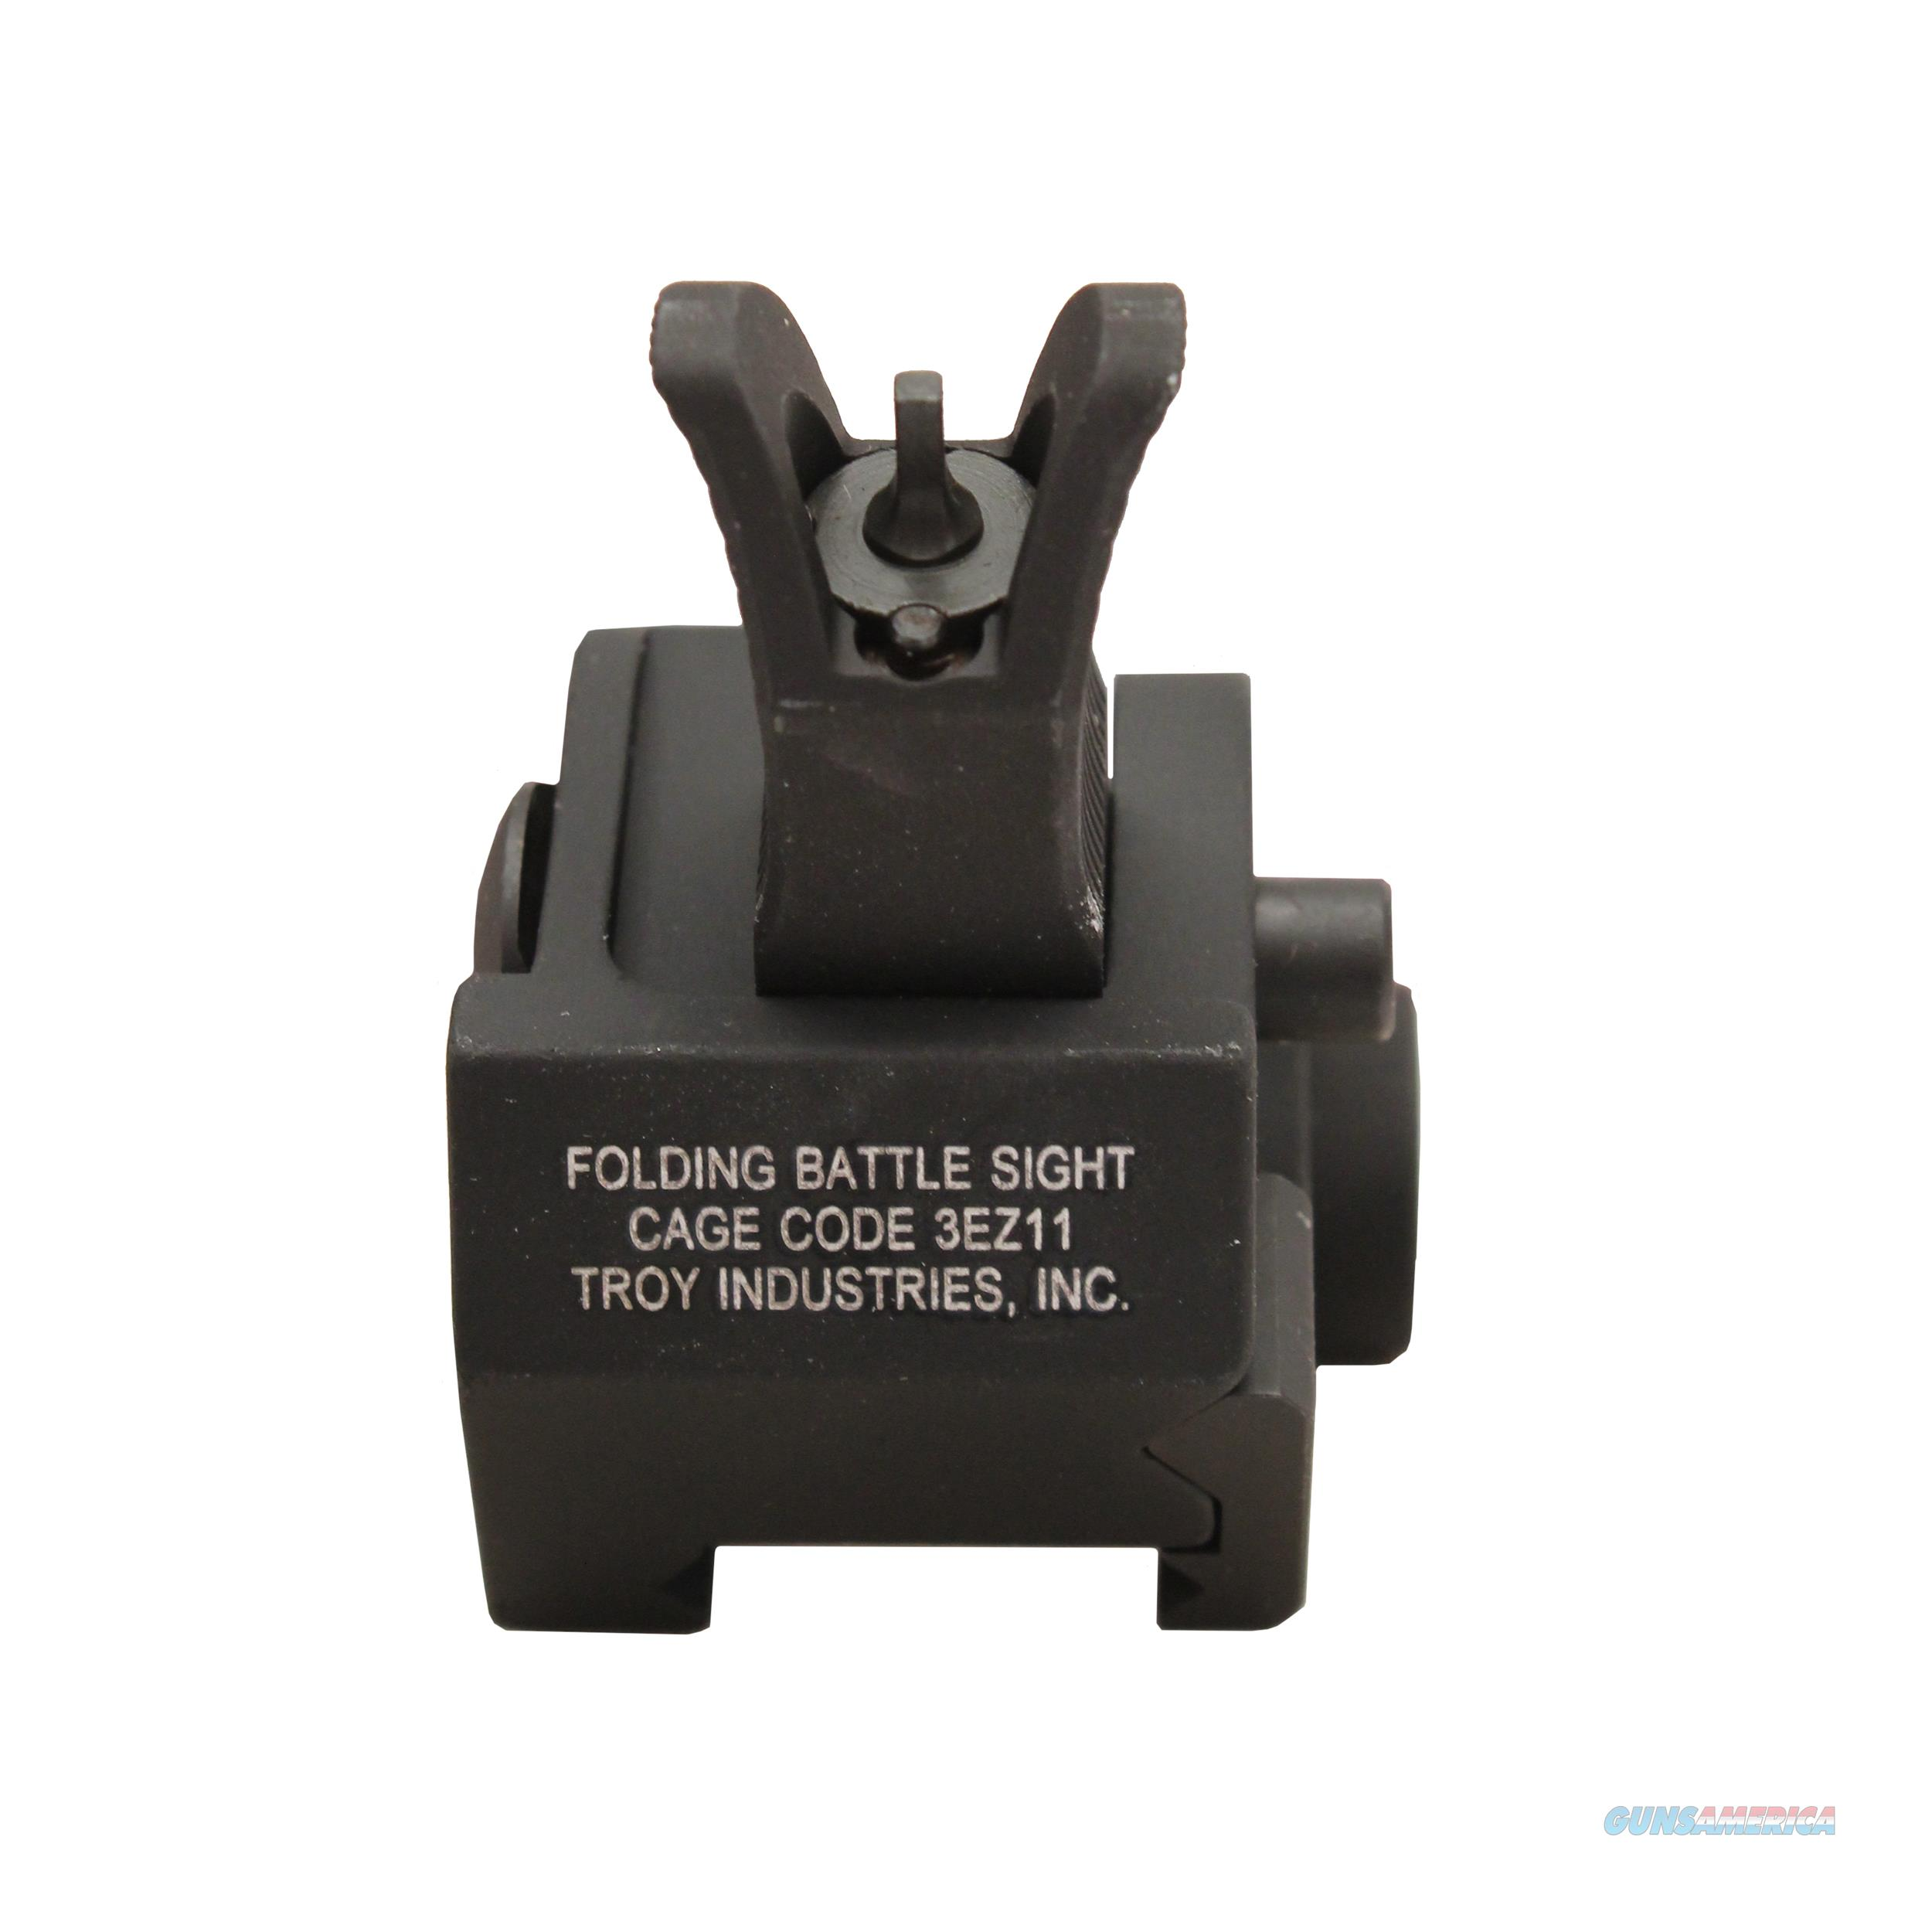 Troy Industries Inc Front M4 Gas Block Sight SSIG-GBF-0MBT-00  Non-Guns > Iron/Metal/Peep Sights